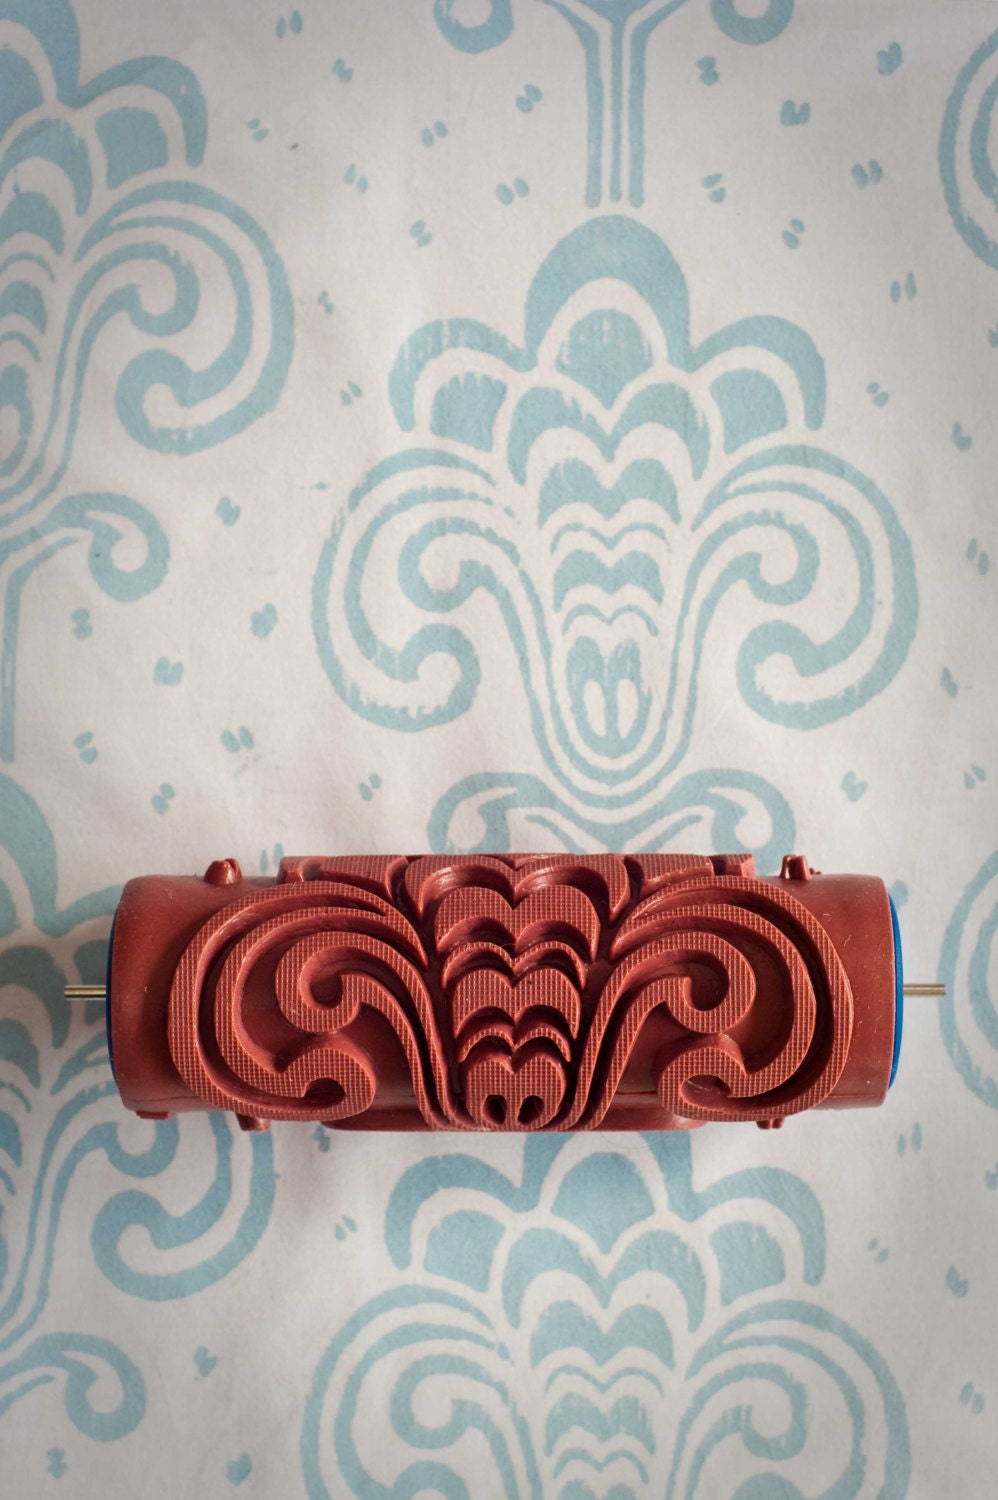 No 13 Patterned Paint Roller From The Painted House Interiors Inside Ideas Interiors design about Everything [magnanprojects.com]